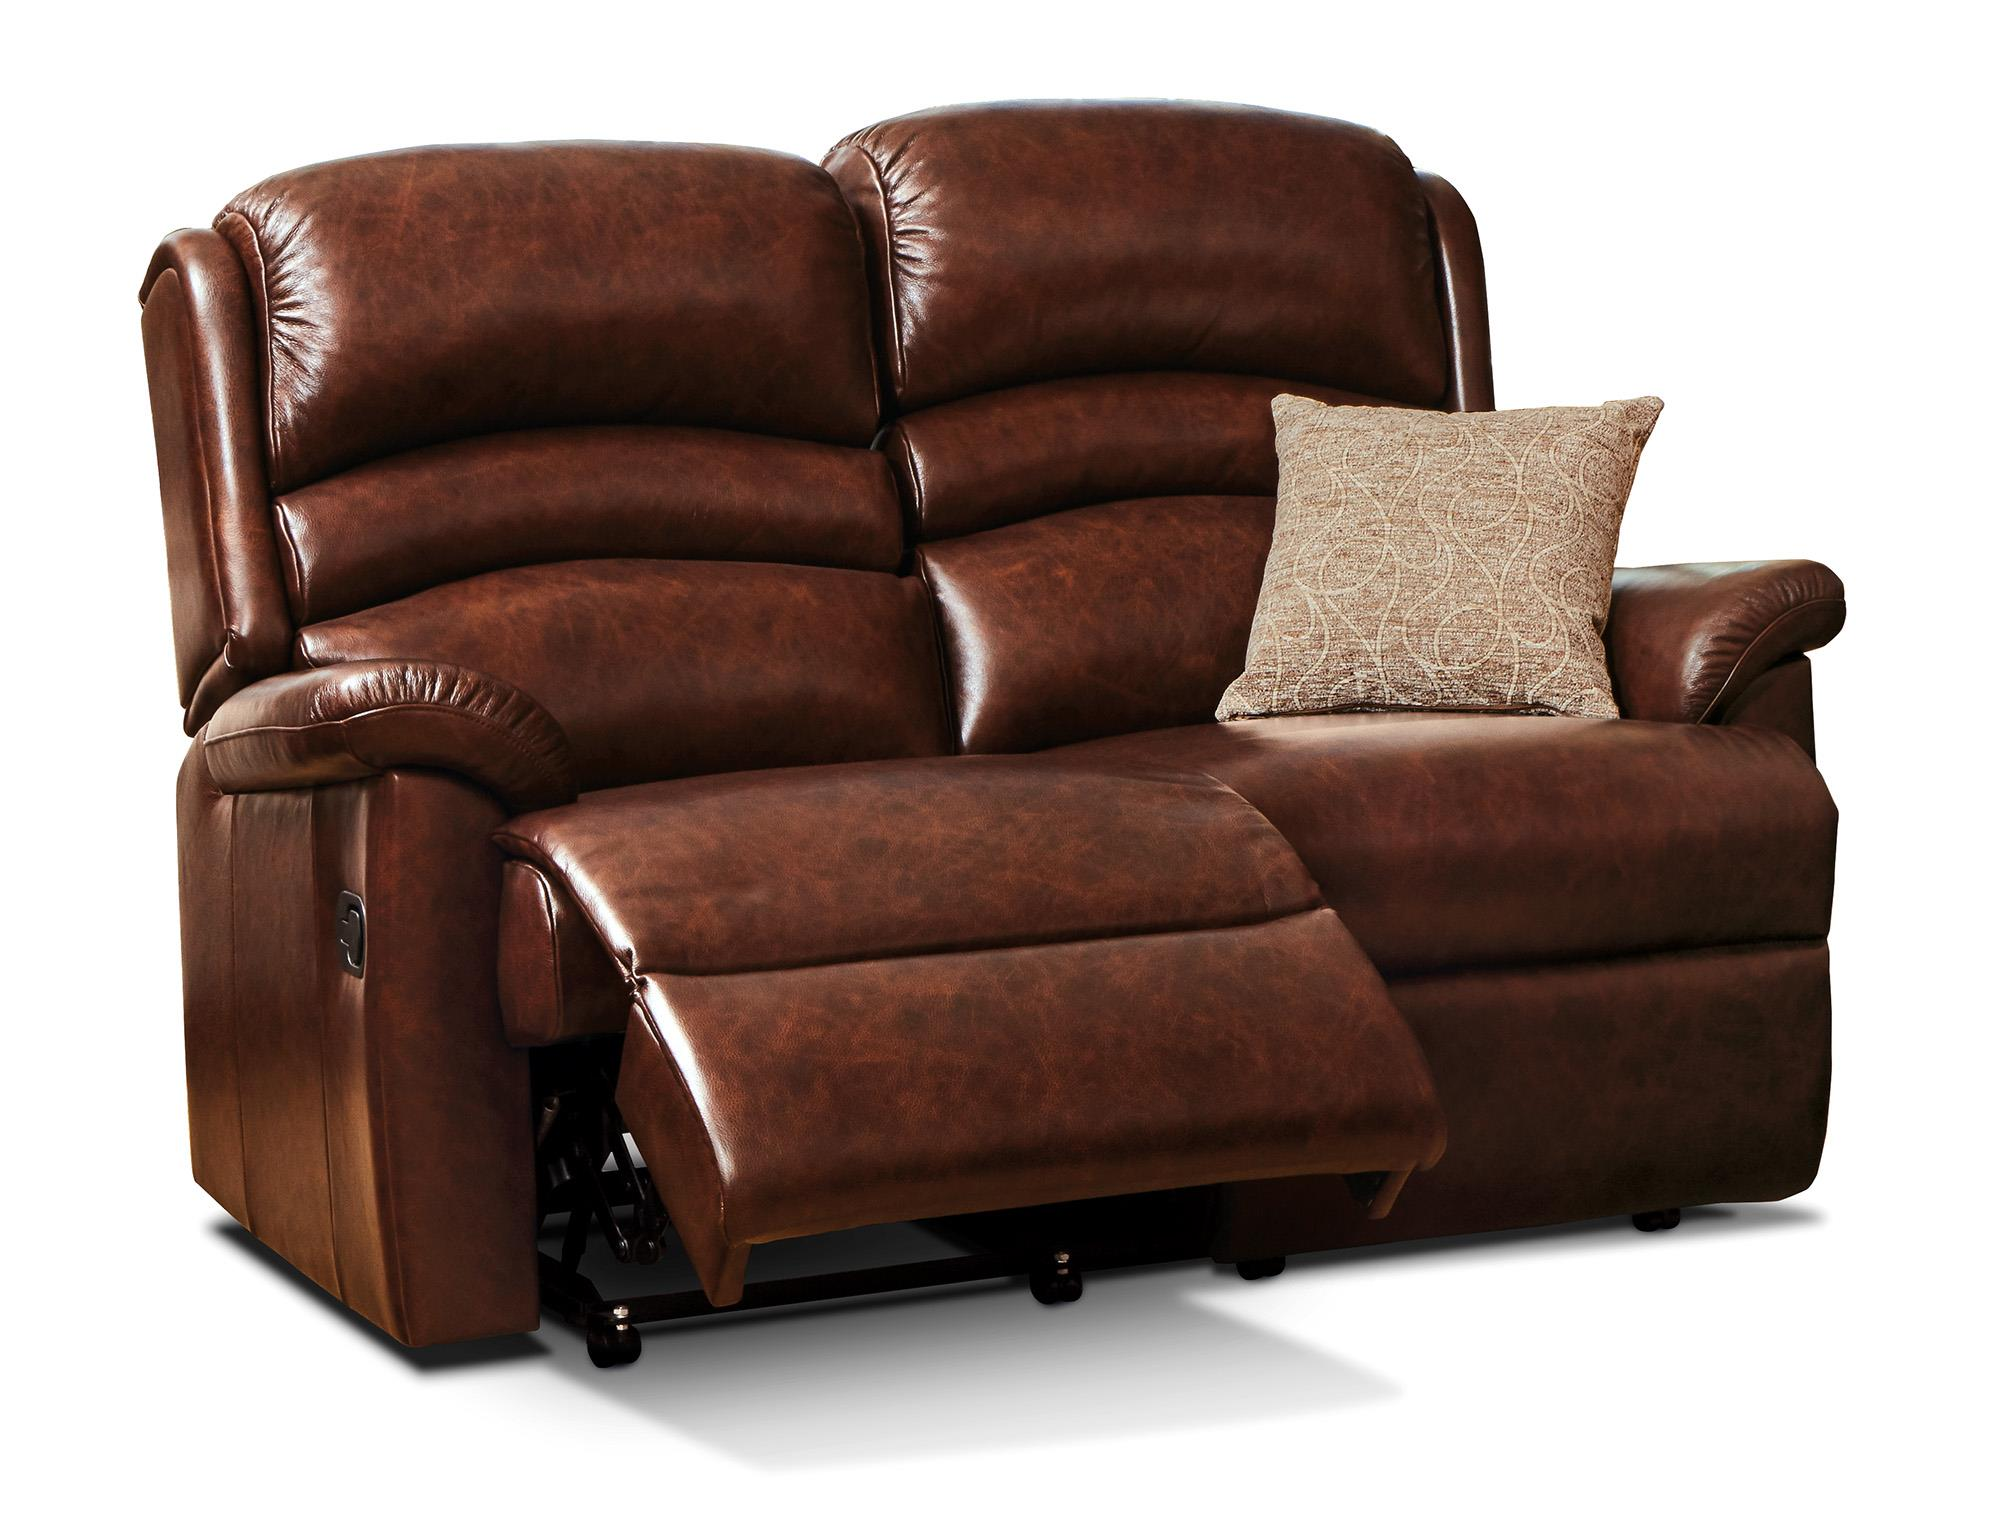 Olivia Leather Upholstery Collection By Sherborne Orchards